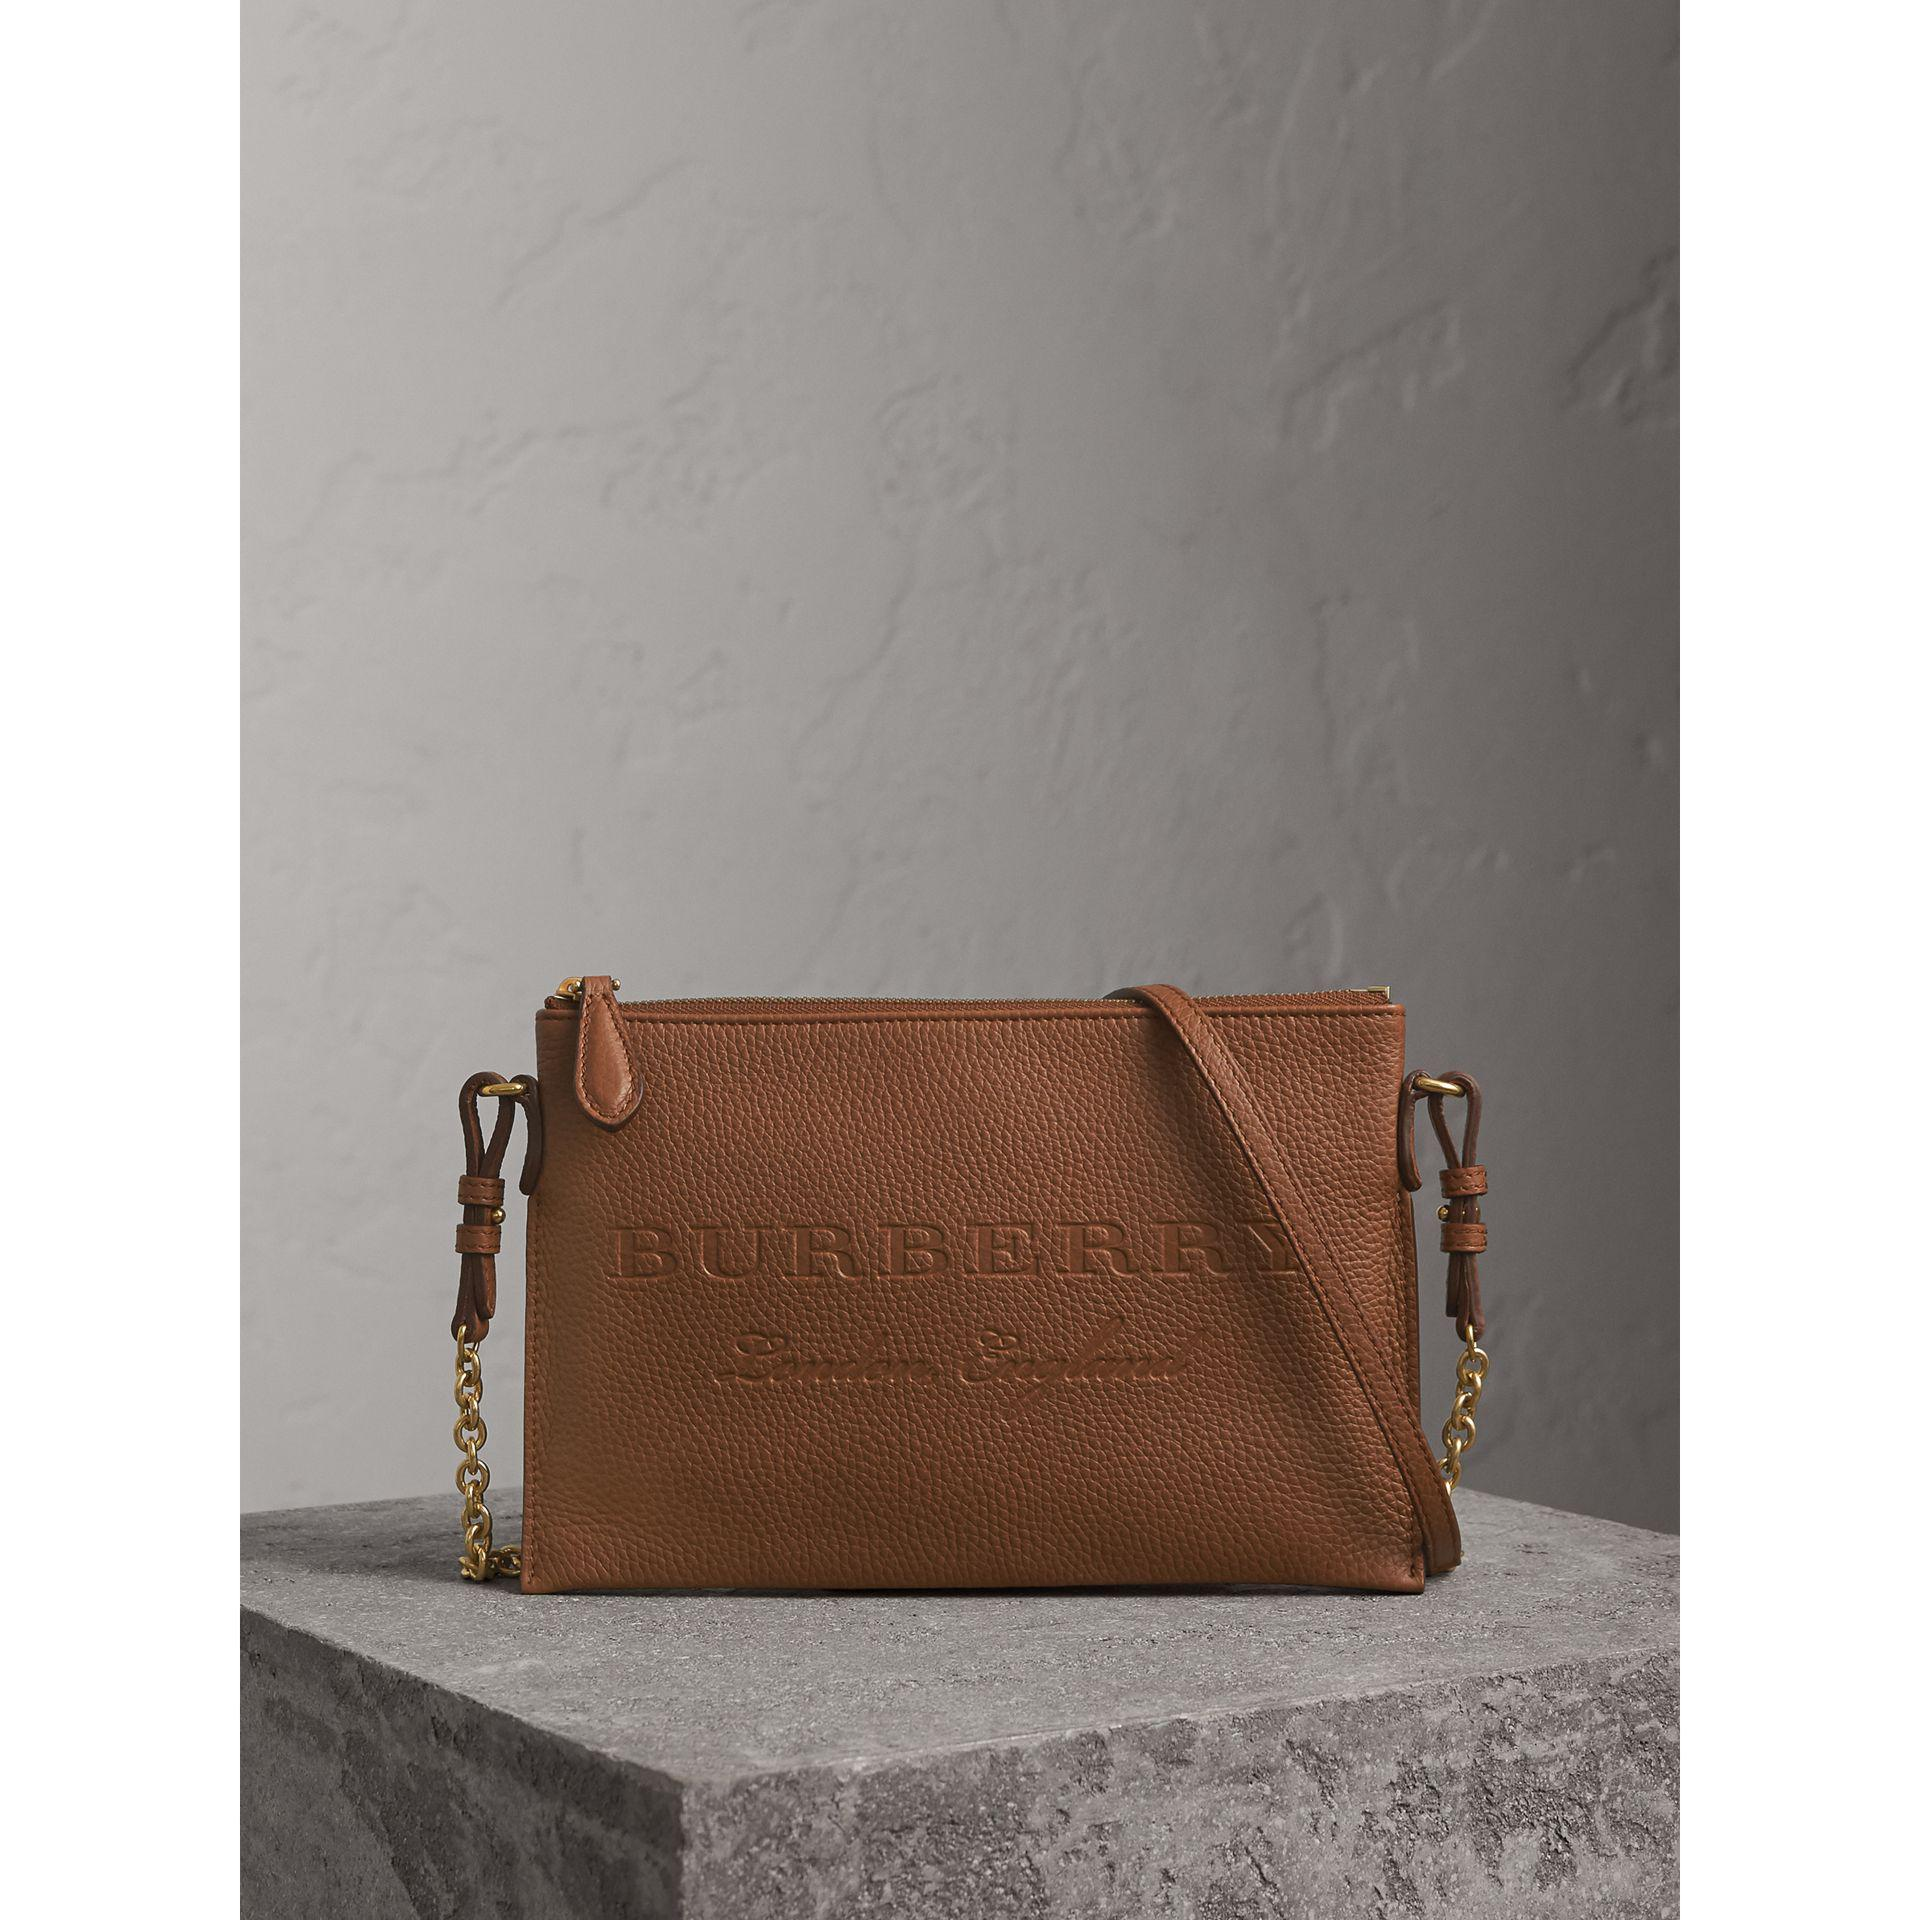 90ae83f083e4 Lyst - Burberry Embossed Leather Clutch Bag in Brown